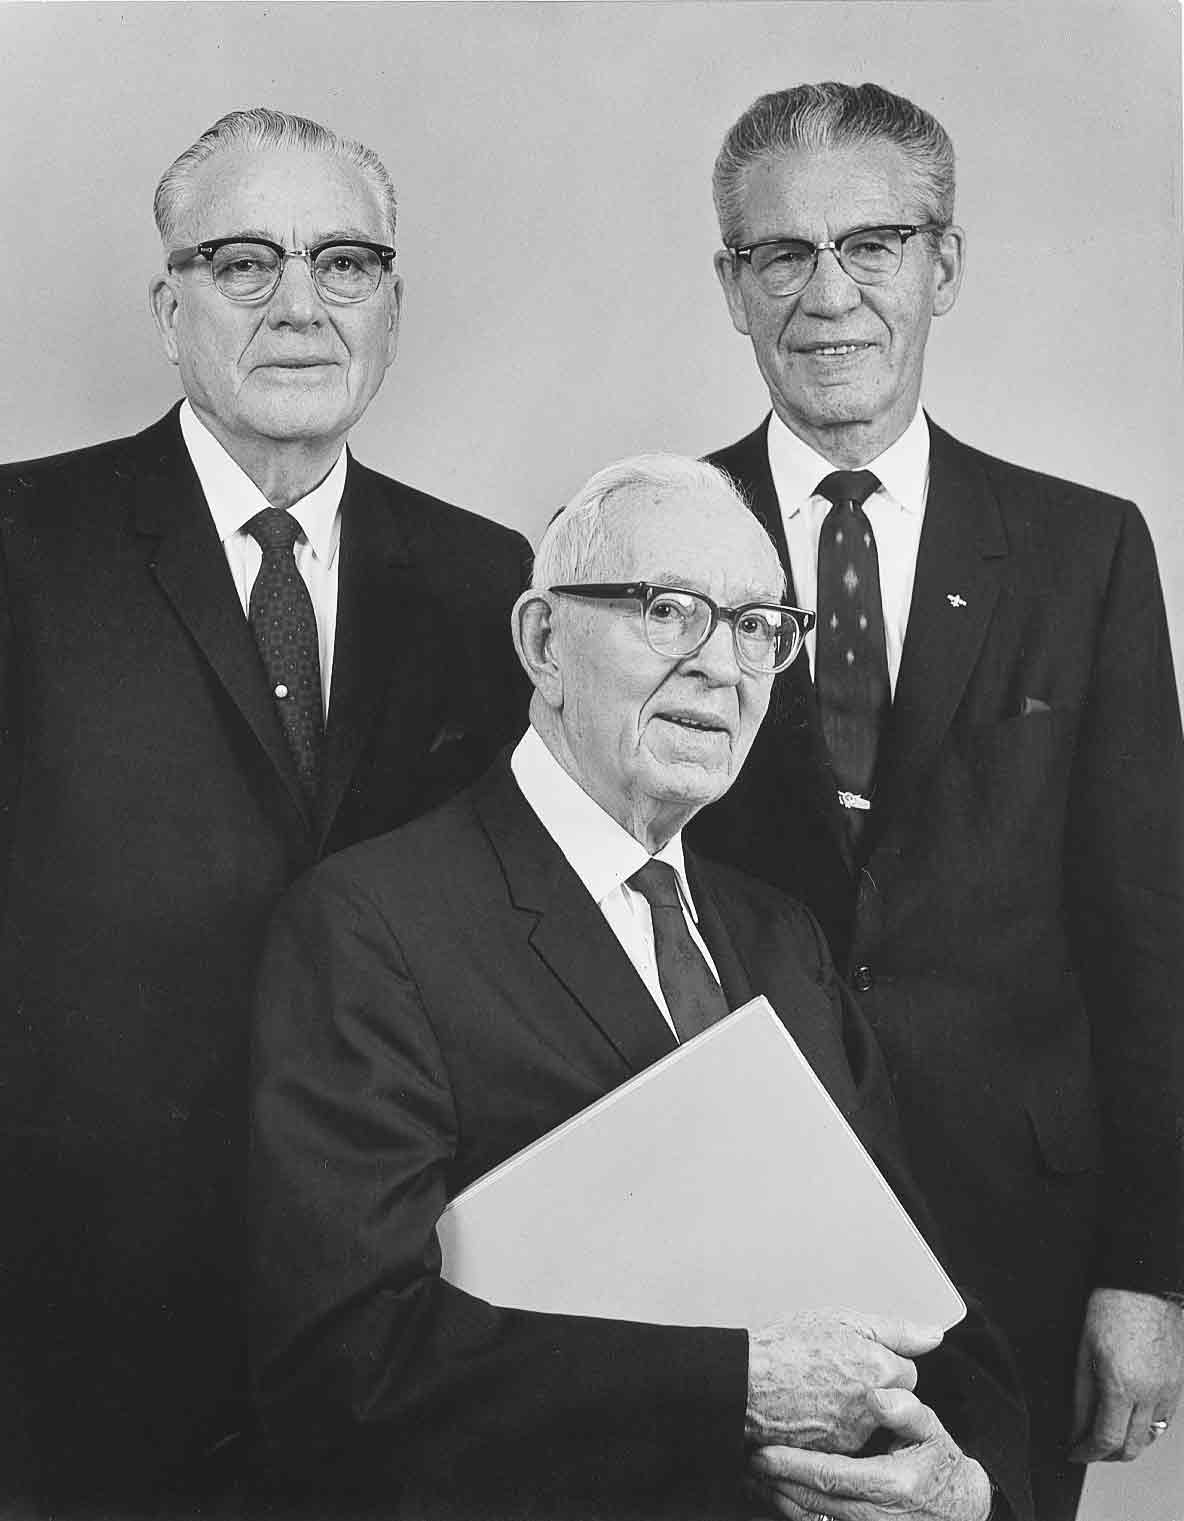 First Presidency in 1970. Left to right Harold B. Lee, Joseph Fielding Smith and N. Eldon Tanner.